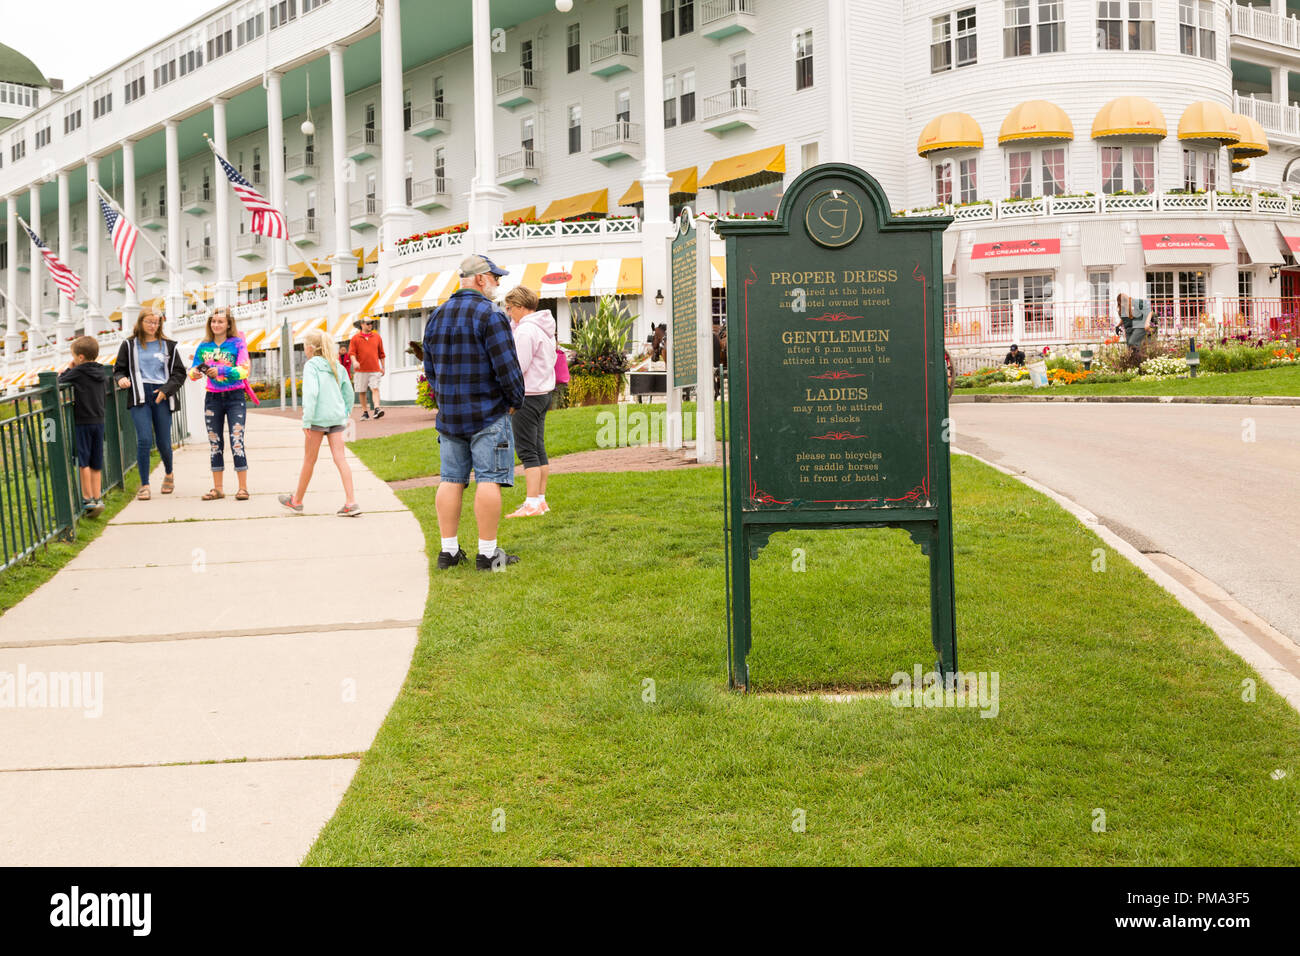 Outdoor sign with proper dress code rules, in front of the Grand Hotel resort on Mackinac Island, Michigan. The tourists  around are dressed casually. - Stock Image